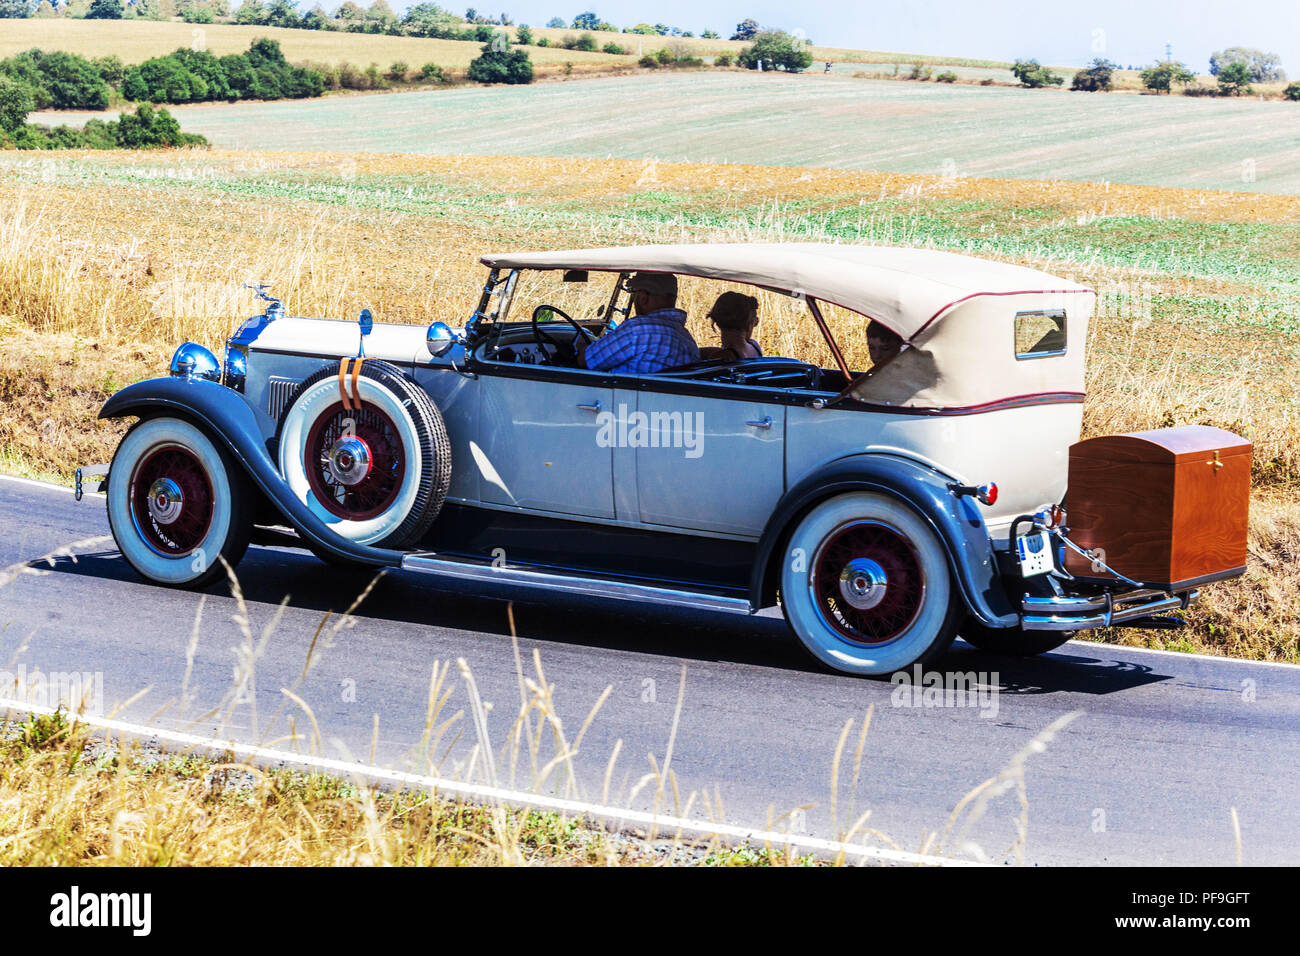 Packard Deluxe Eight(1931), Oldtimer car on a rural road, Czech Republic - Stock Image